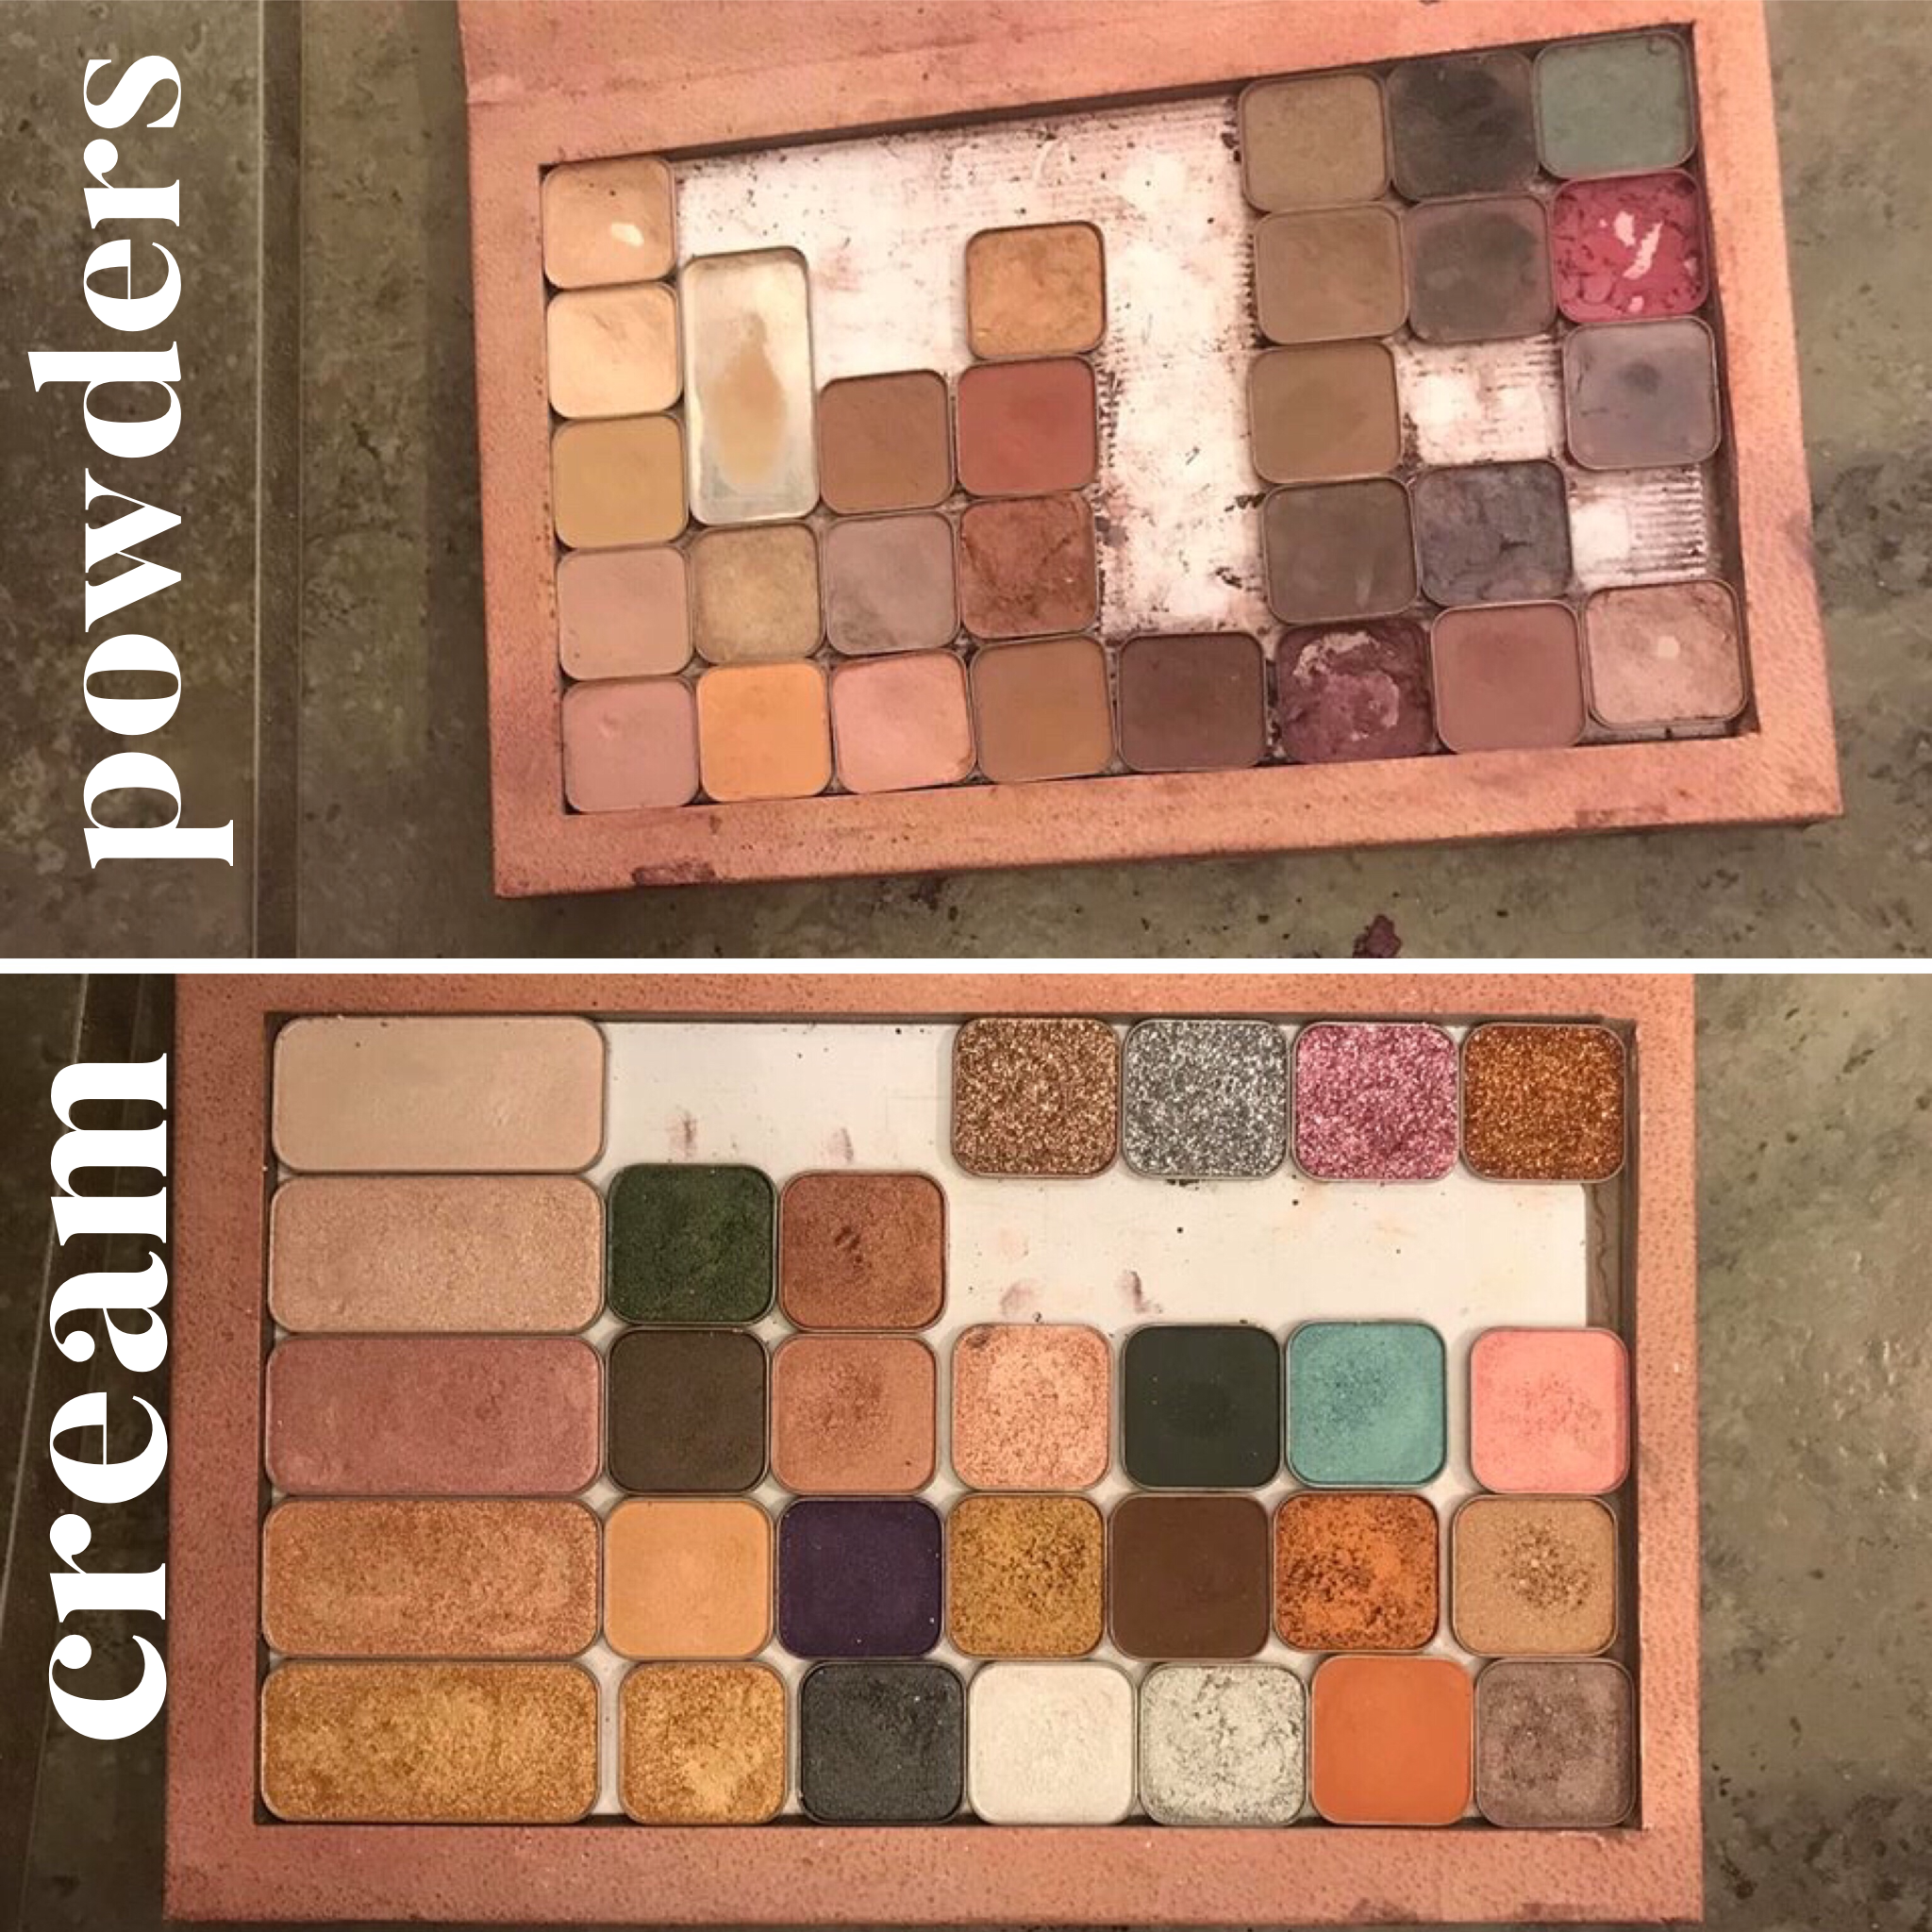 A fellow artist dropped her eyeshadow palette on accident